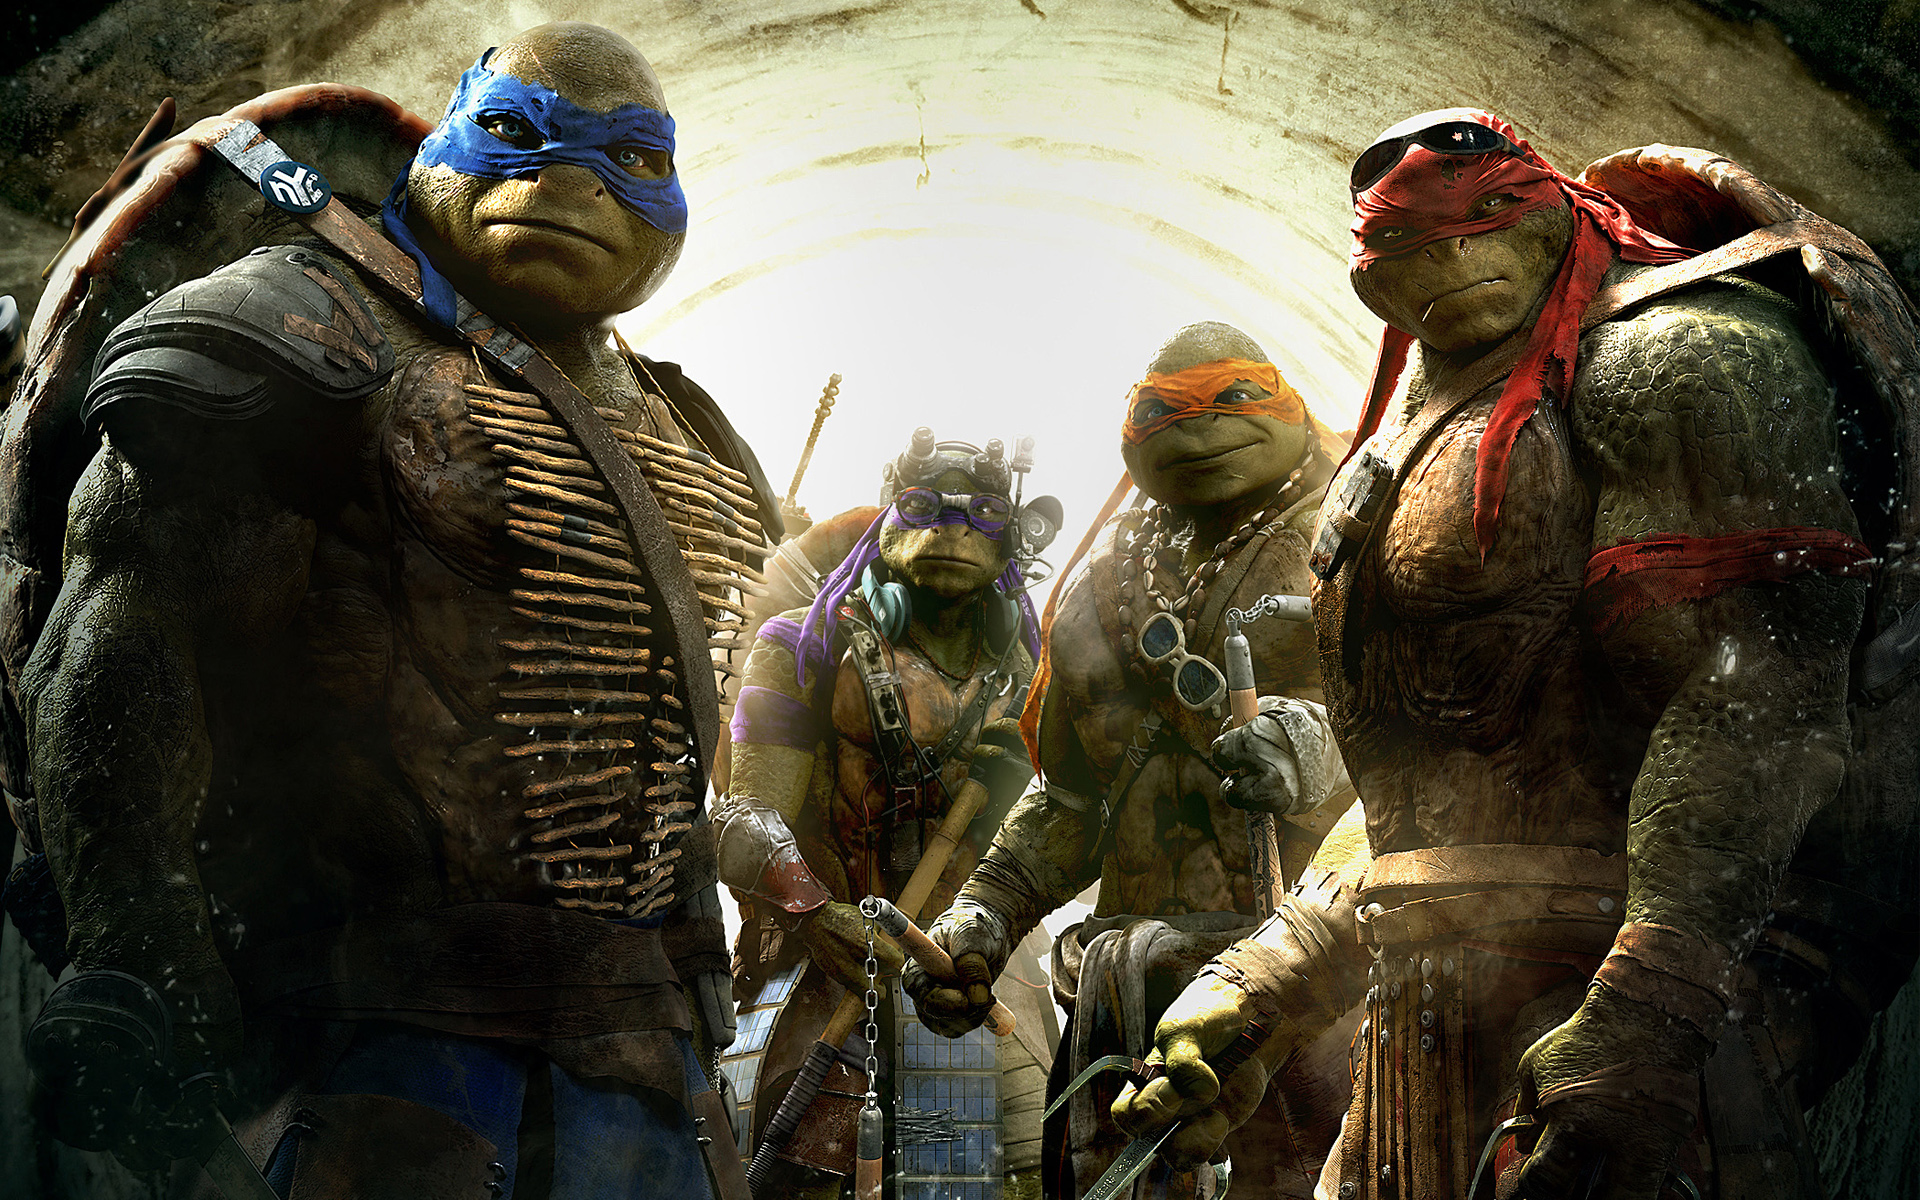 Teenage Mutant Ninja Turtles 2014 2542.11 Kb